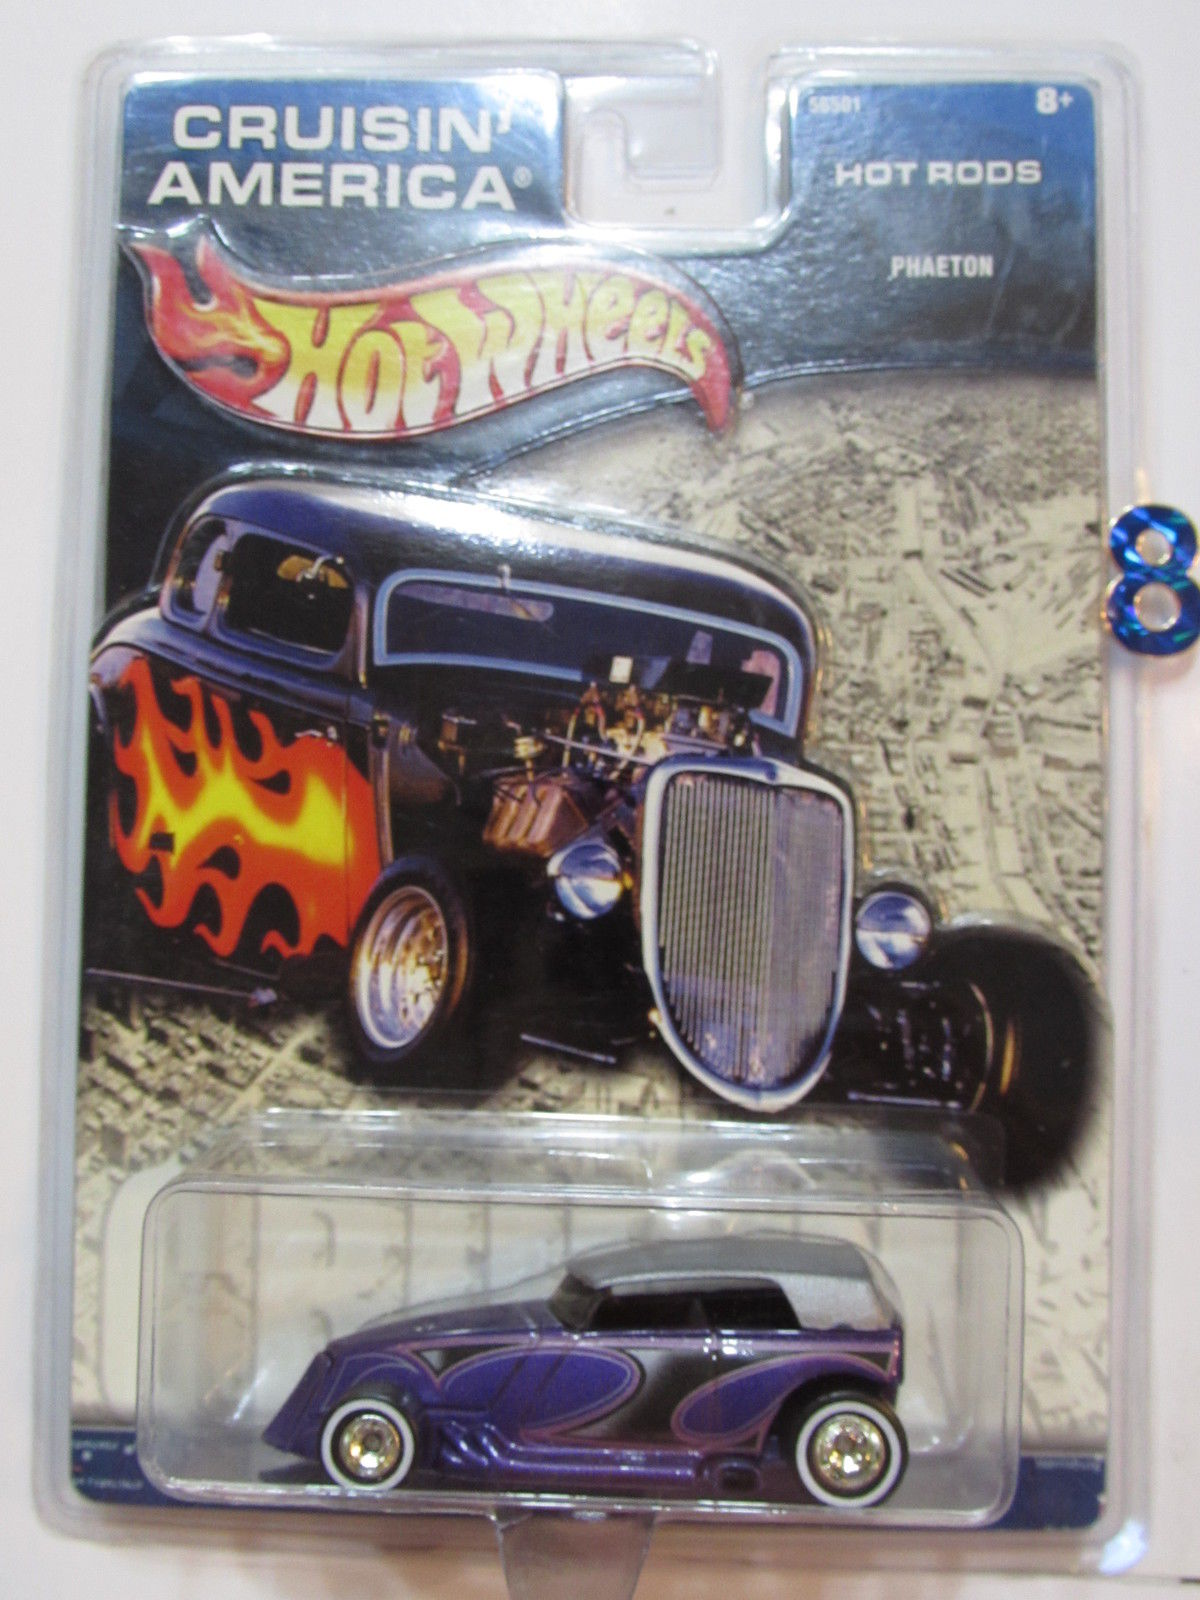 HOT WHEELS CRUISIN'S AMERICA HOT RODS - PHAETON